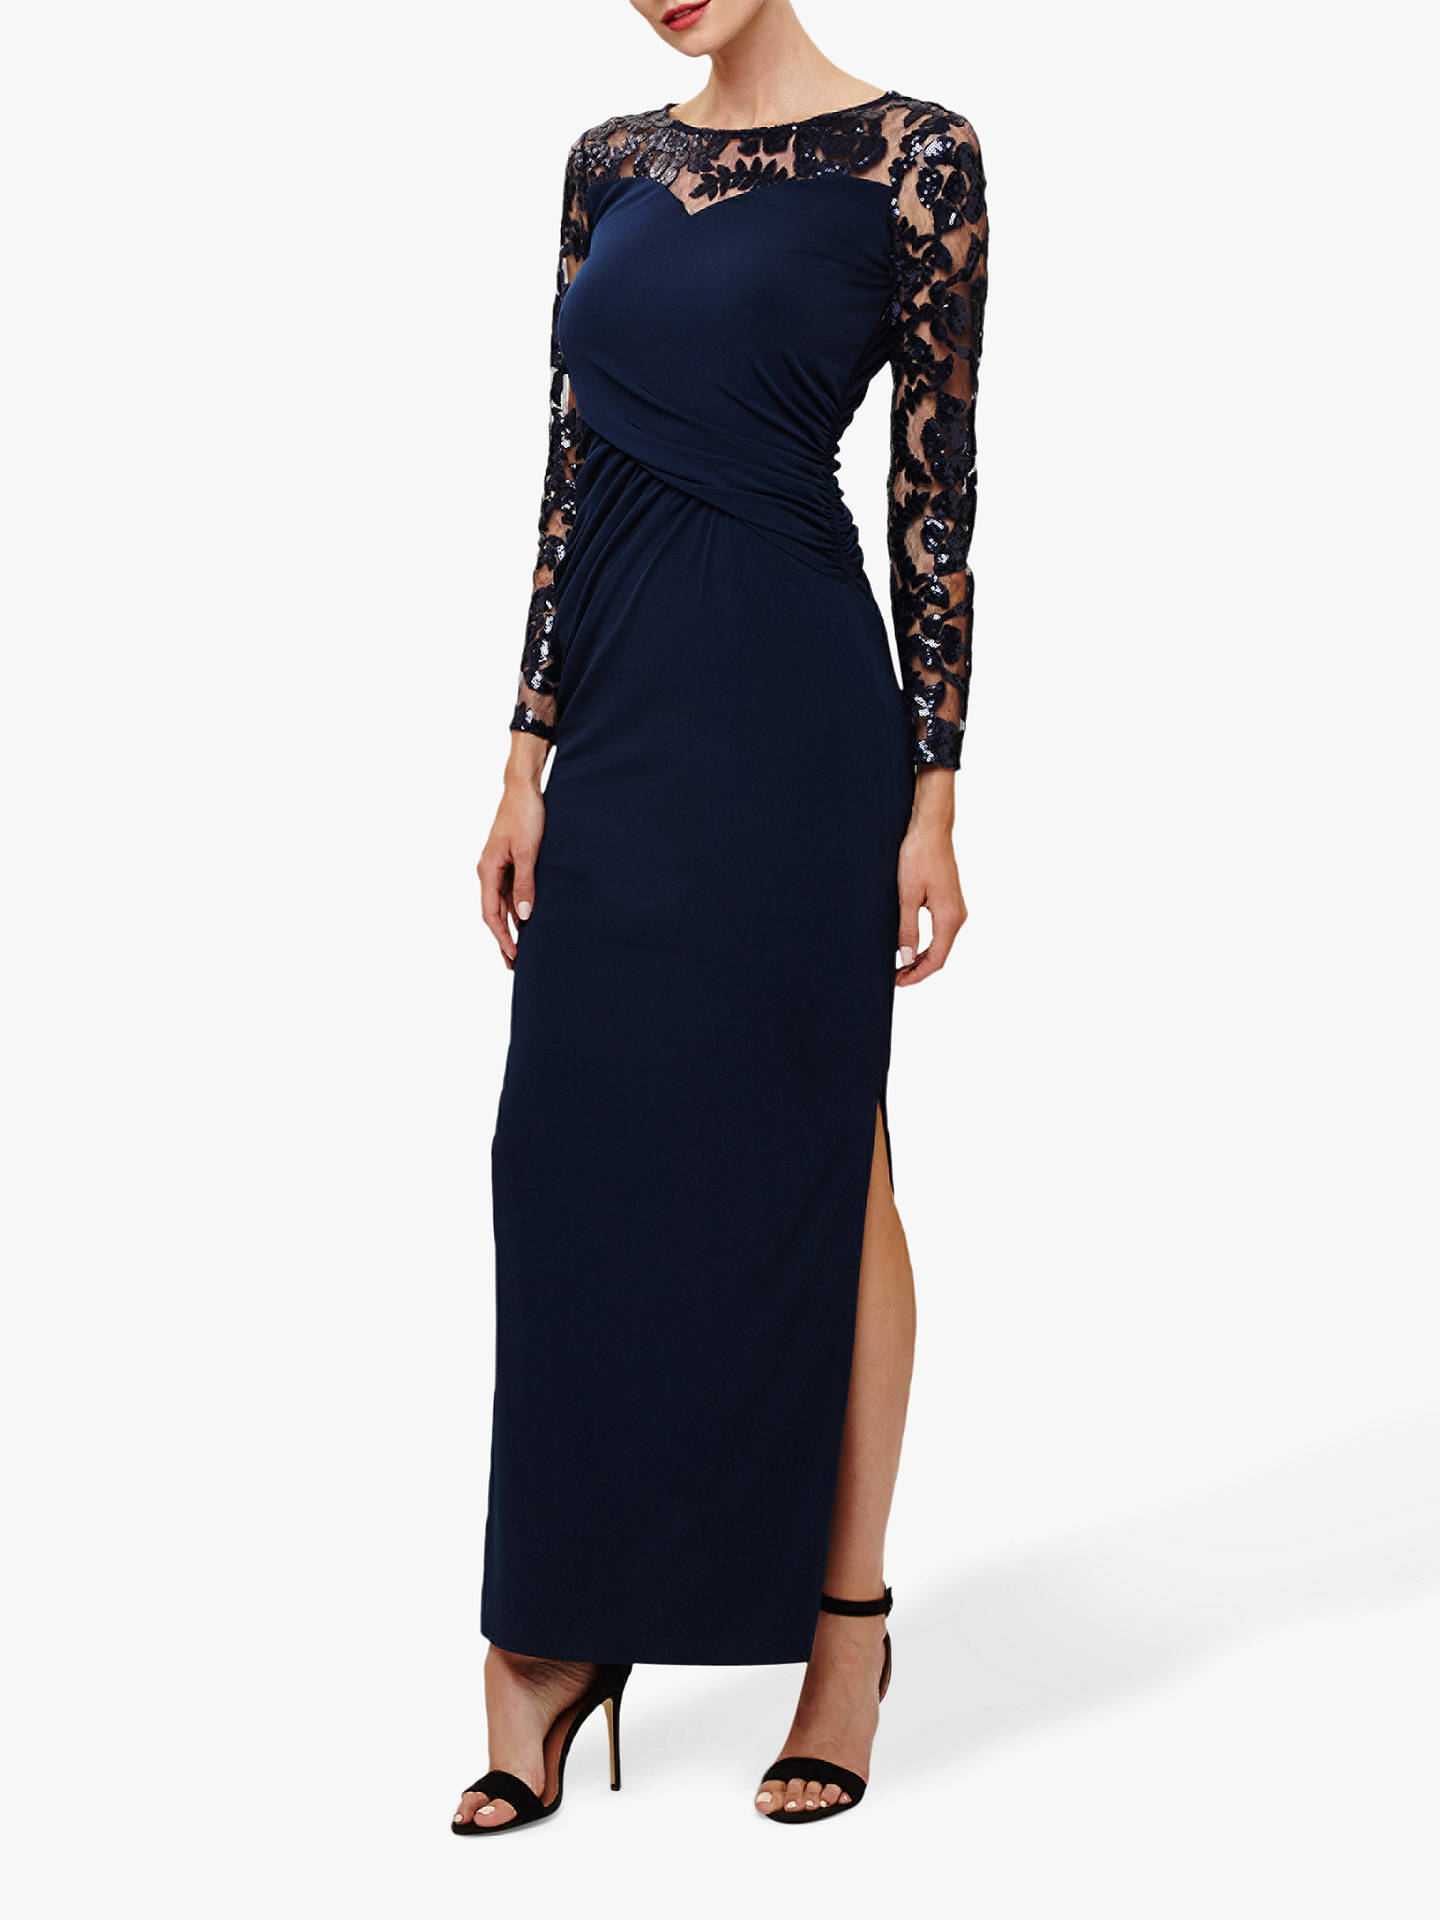 5e720c9567 Buy Phase Eight Daniela Embroidered Maxi Dress, Navy, 6 Online at  johnlewis.com ...